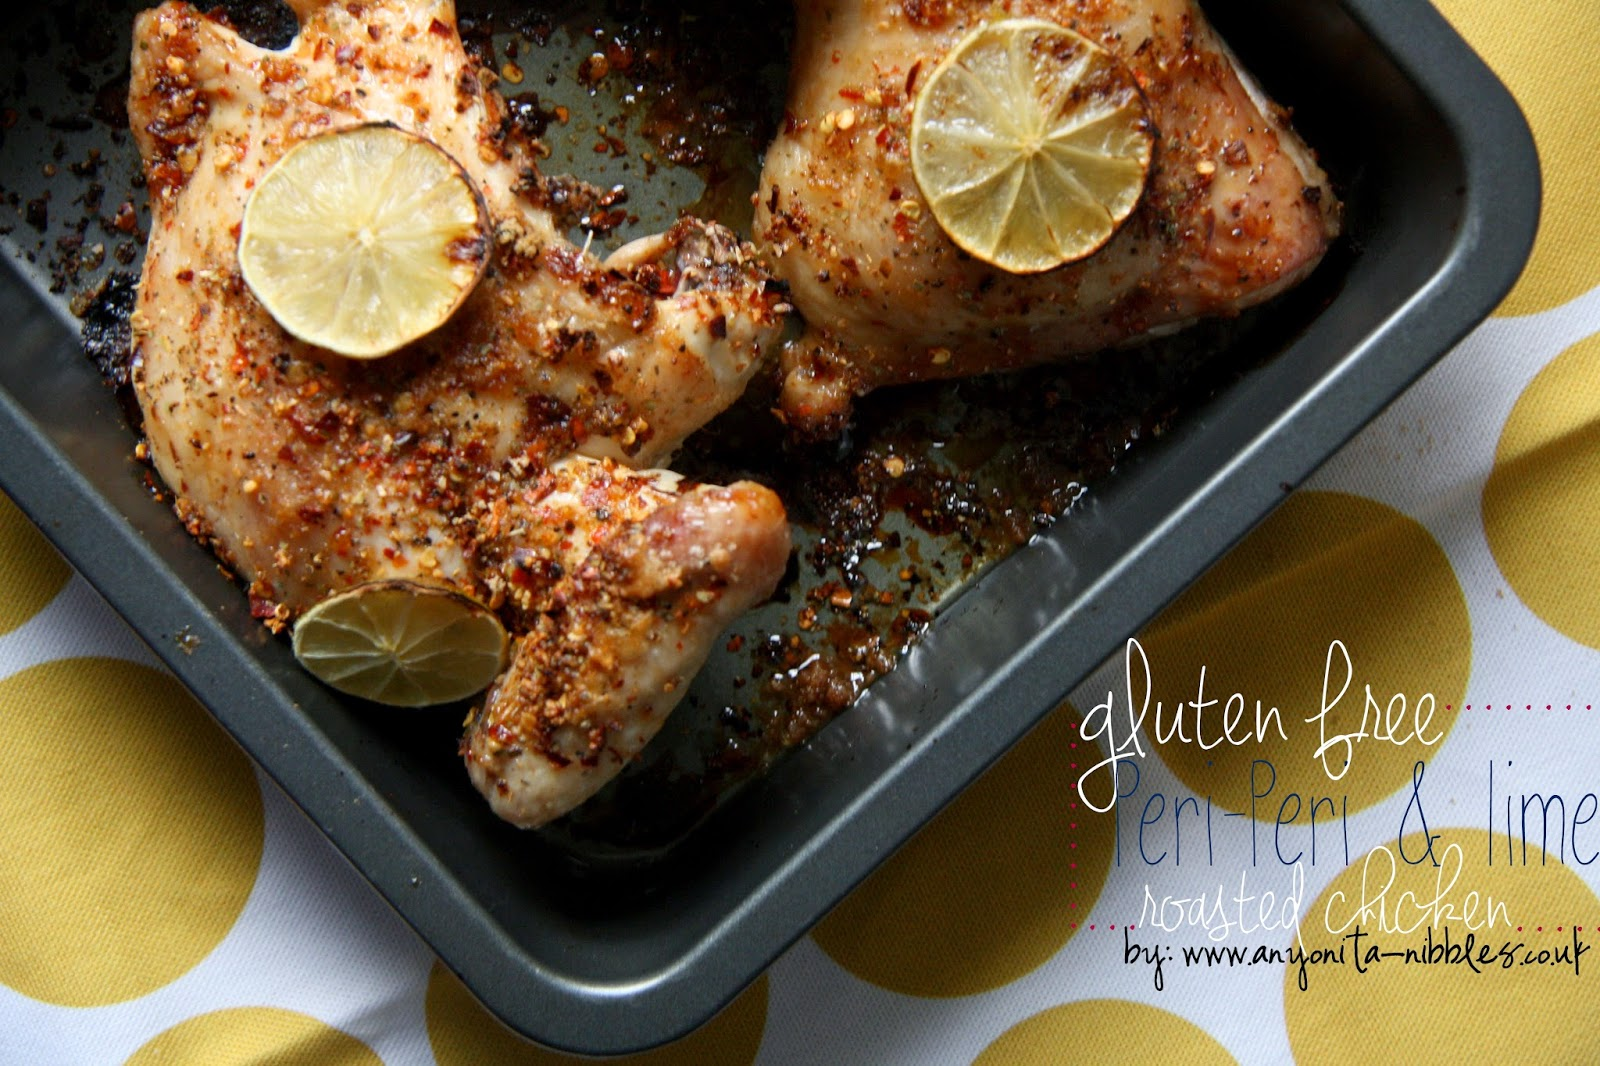 Quarter chicken with lime and peri-peri seasoning from Anyonita-nibbles.co.uk